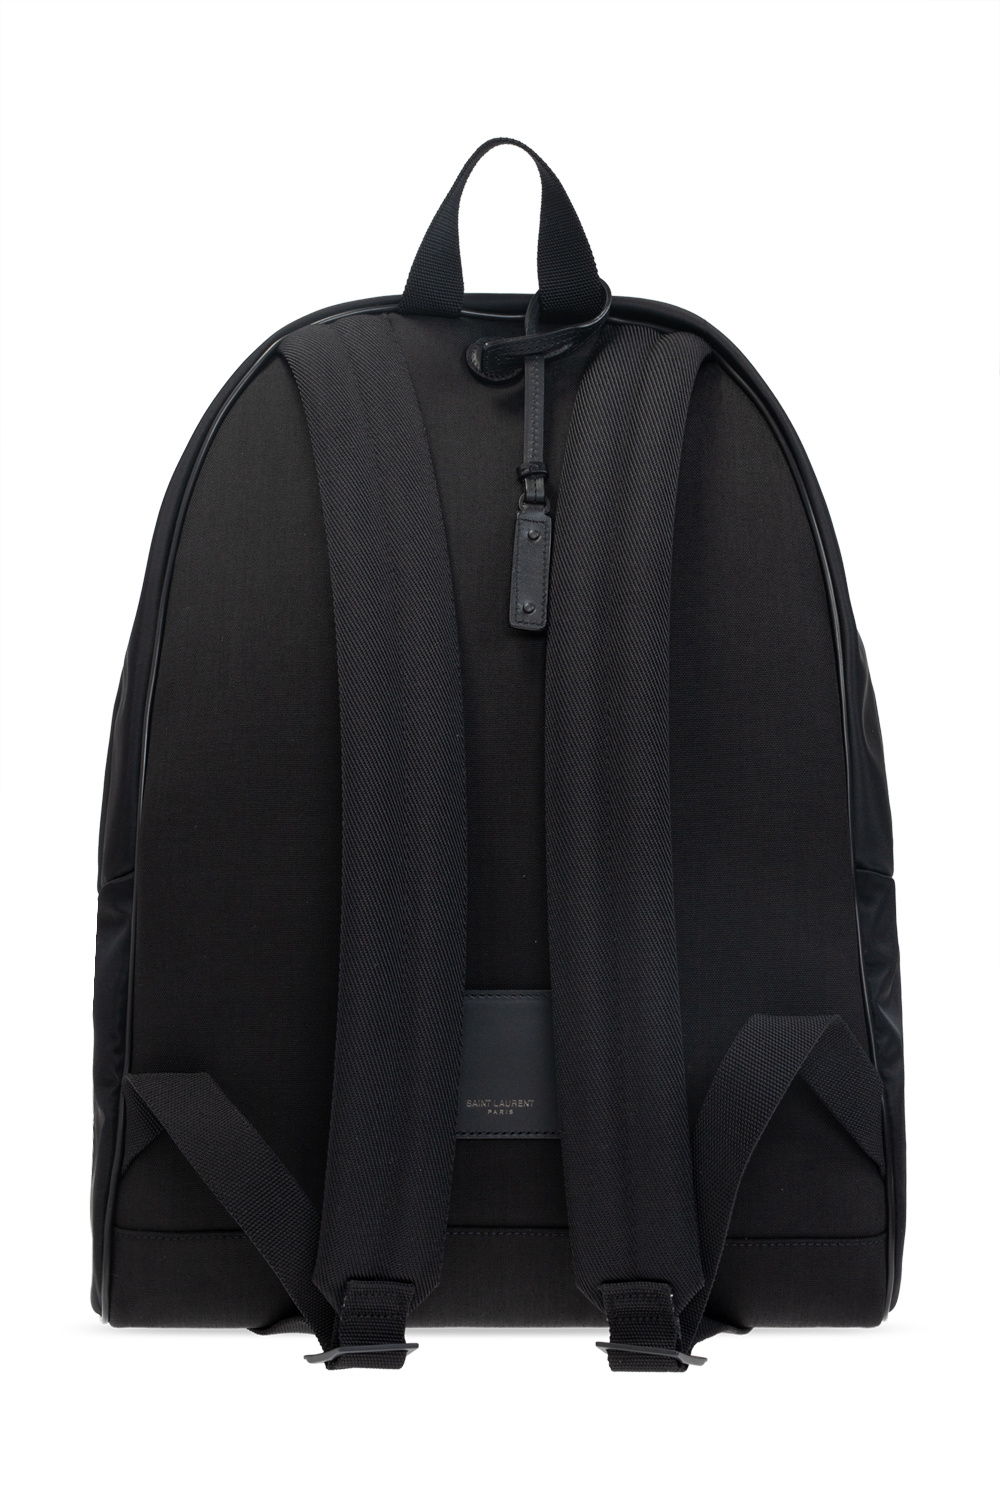 Saint Laurent Backpack with logo